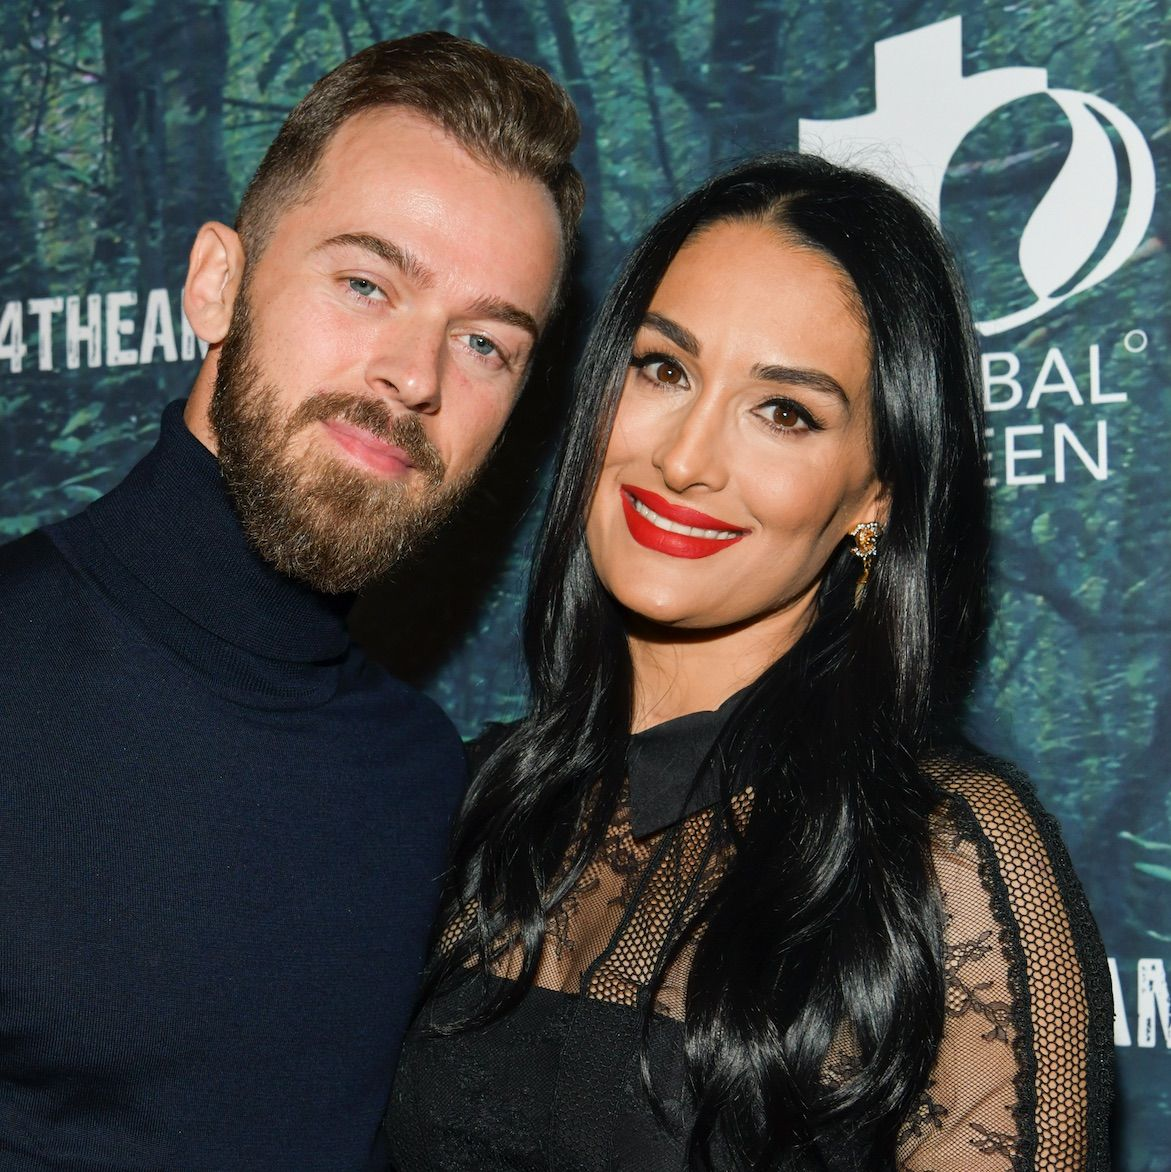 Strictly Come Dancing star confirms his engagement to WWE's Nikki Bella